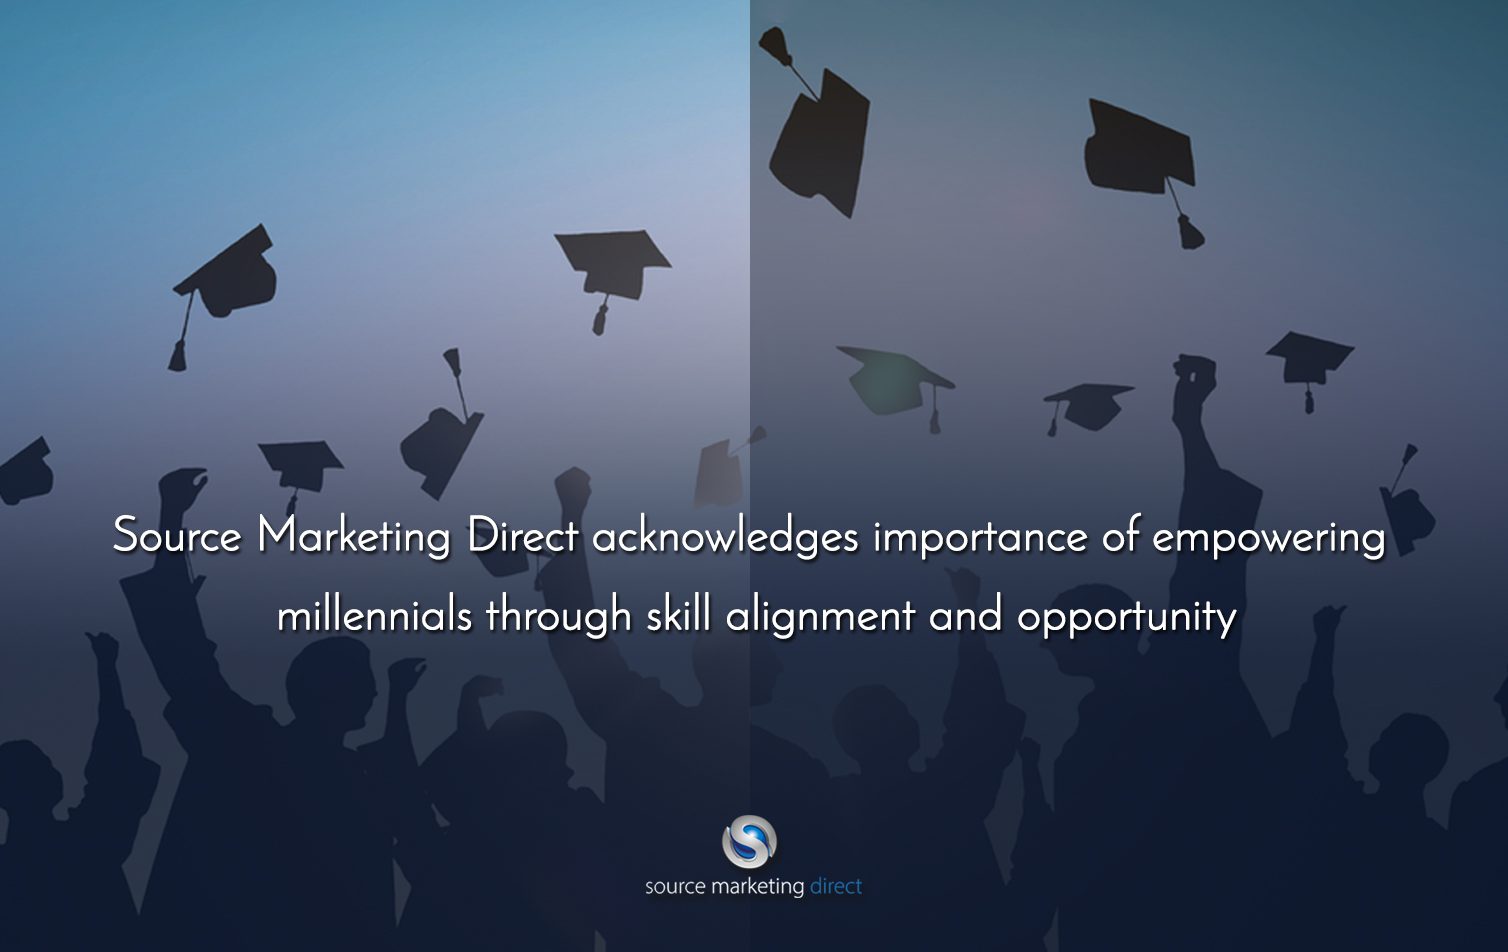 Source Marketing Direct acknowledges importance of empowering millennials through skill alignment and opportunity